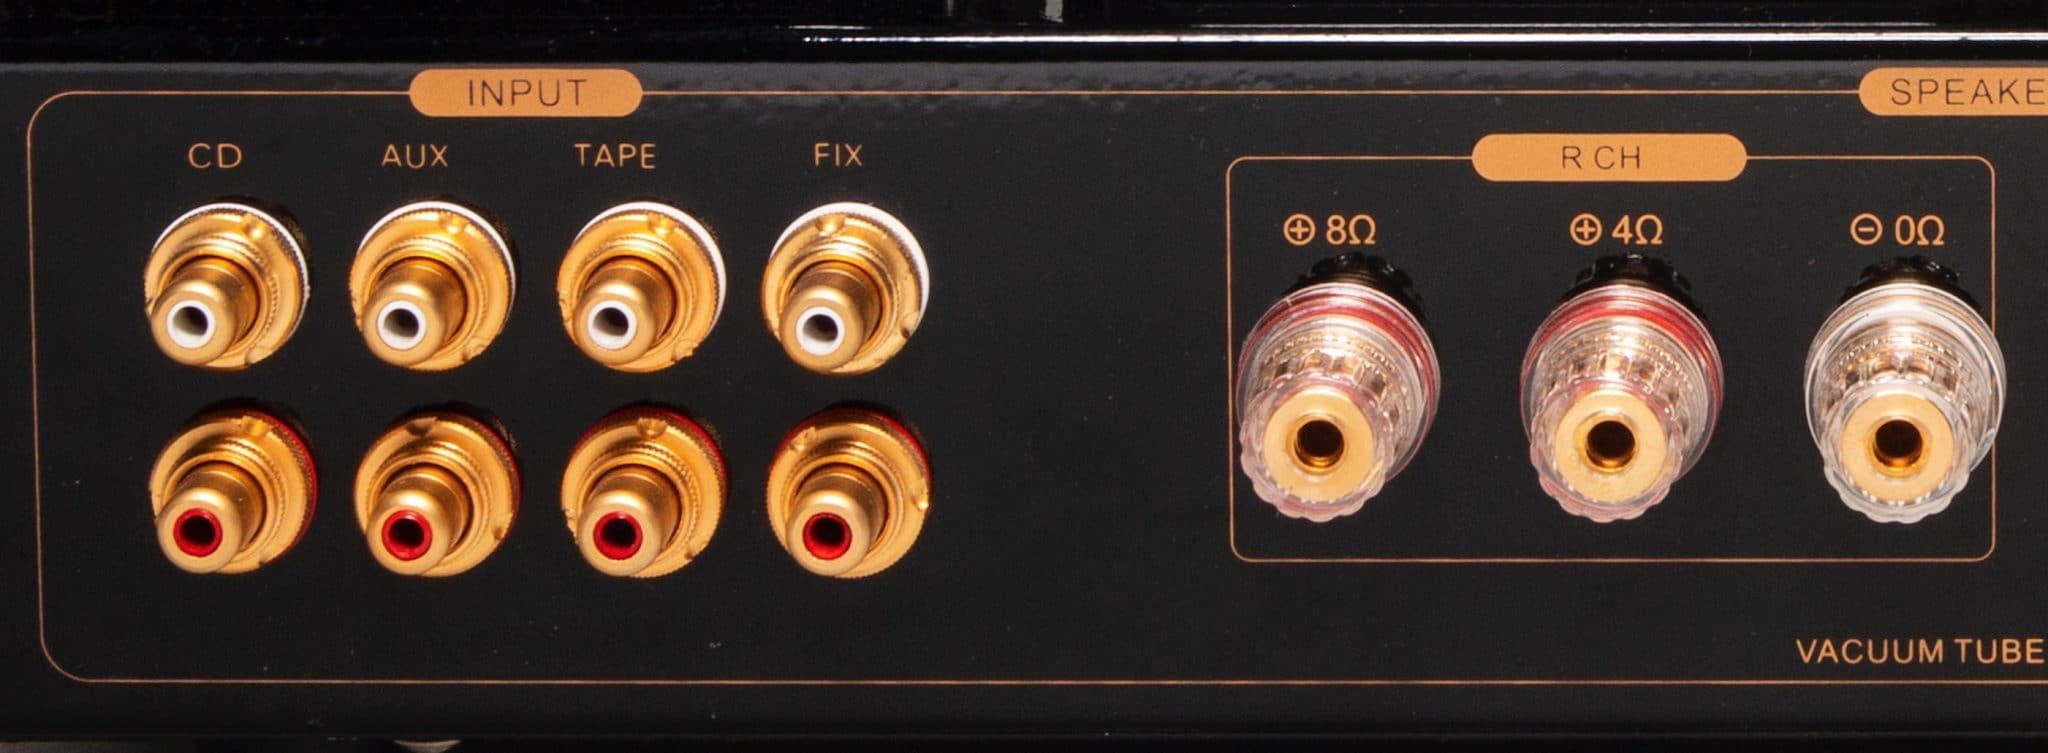 A30-R Amplifier From Puresound